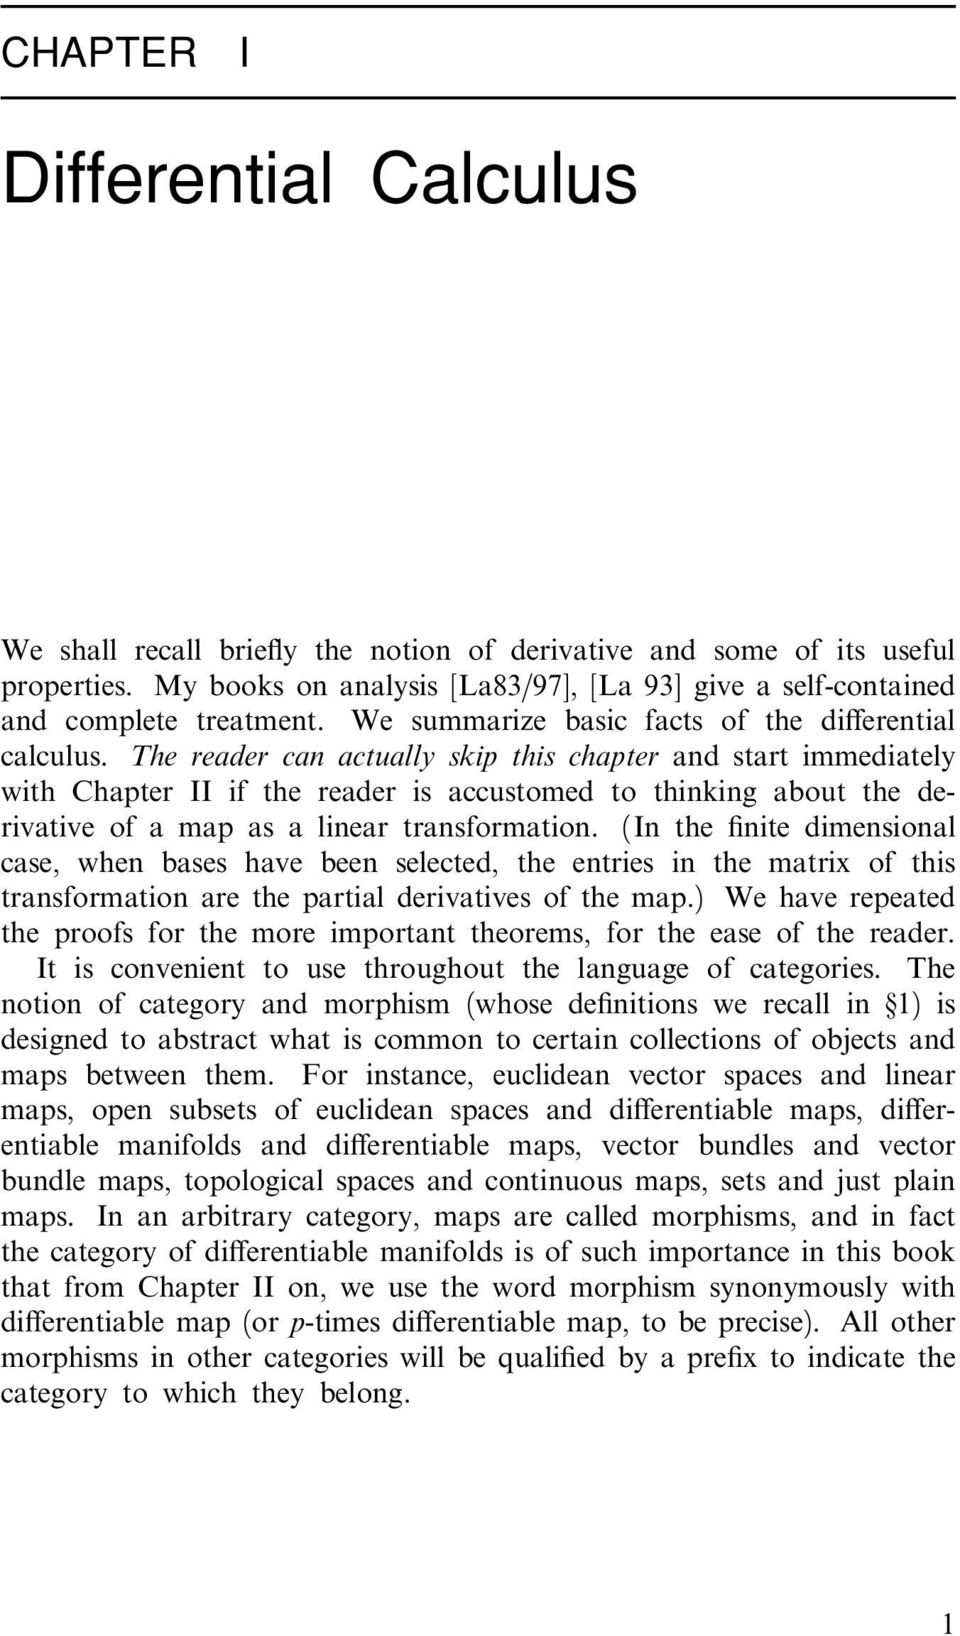 The reader can actually skip this chapter and start immediately with Chapter II if the reader is accustomed to thinking about the derivative of a map as a linear transformation.